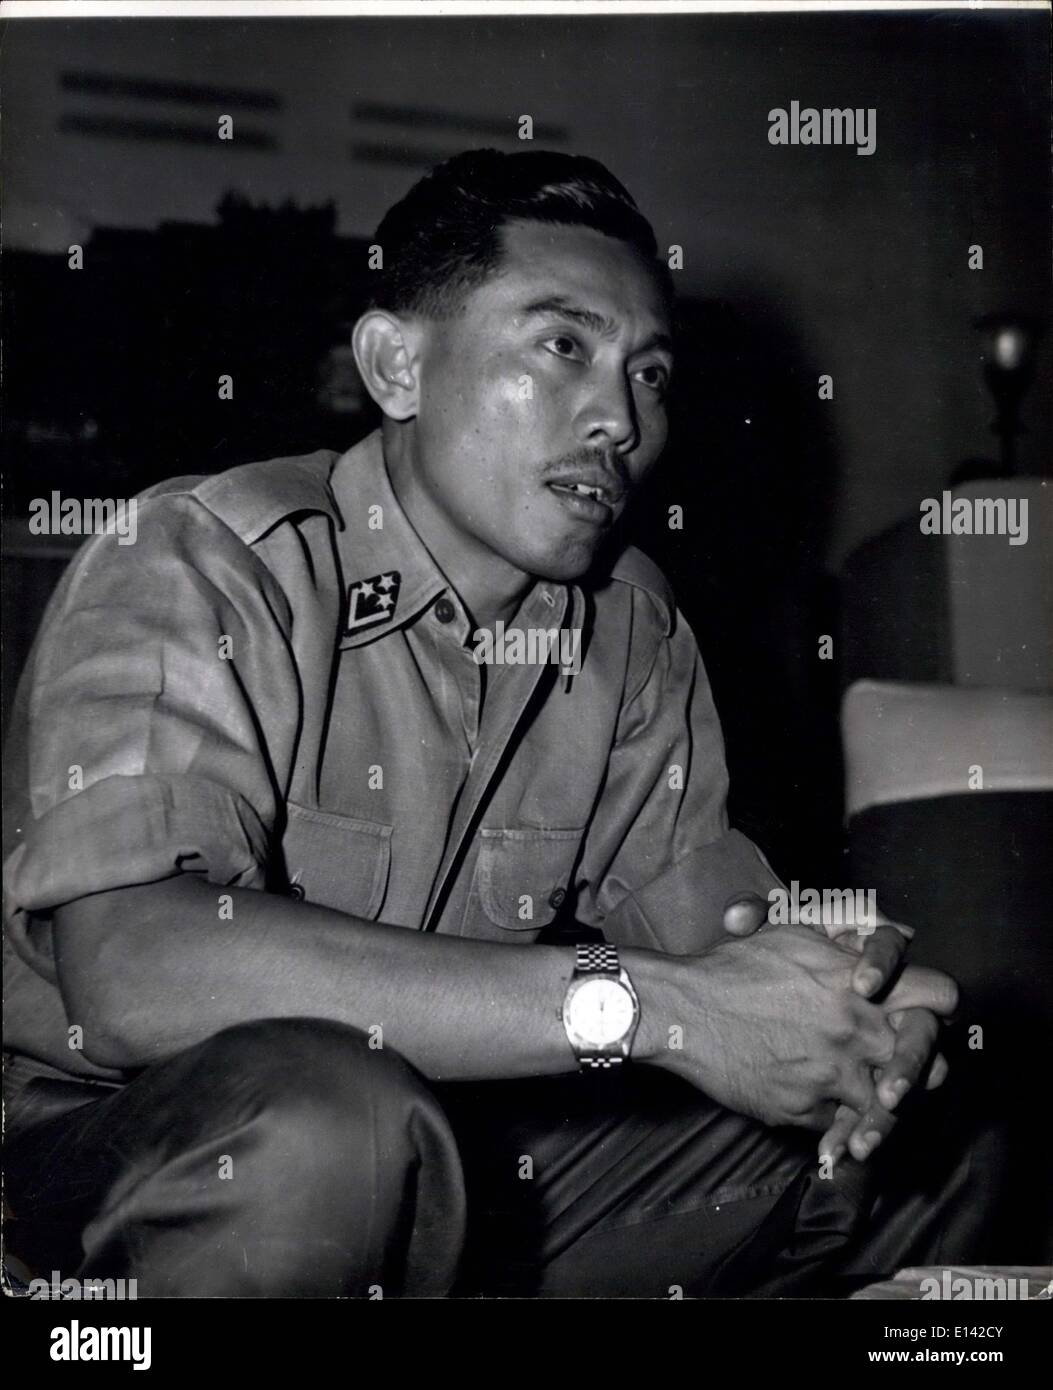 Apr. 04, 2012 - Col. Yani, aged 38 who is in charge of the campaign against the Sumatran rebels and led the landing at Padang. Considered to be one of the most brilliant young officers in Indonesia, he was trained in both Britain and America. - Stock Image